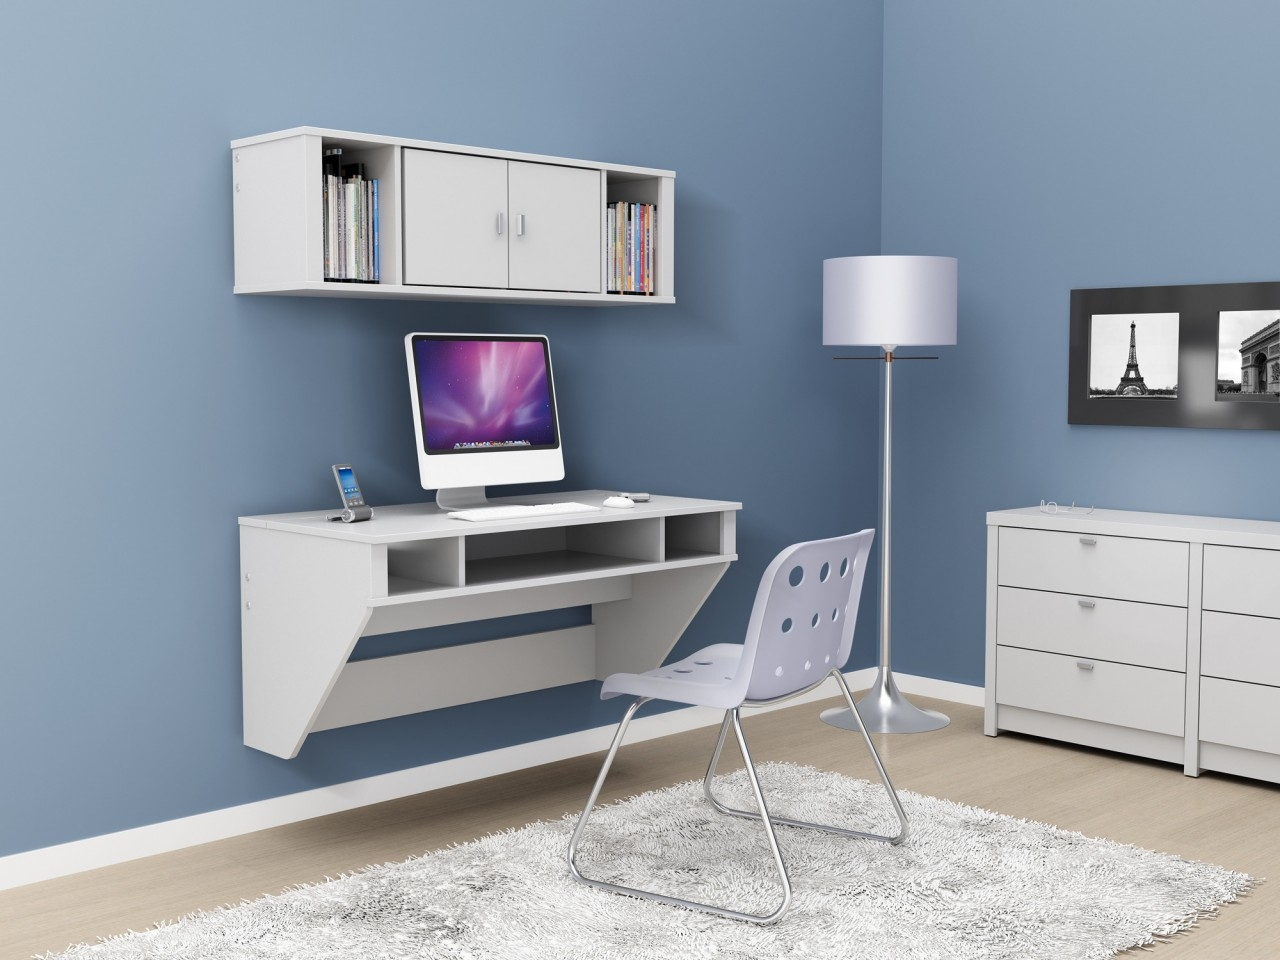 Featured Image of Floating Computer Desk Design Ideas Showcasing Pure White Wooden Desk